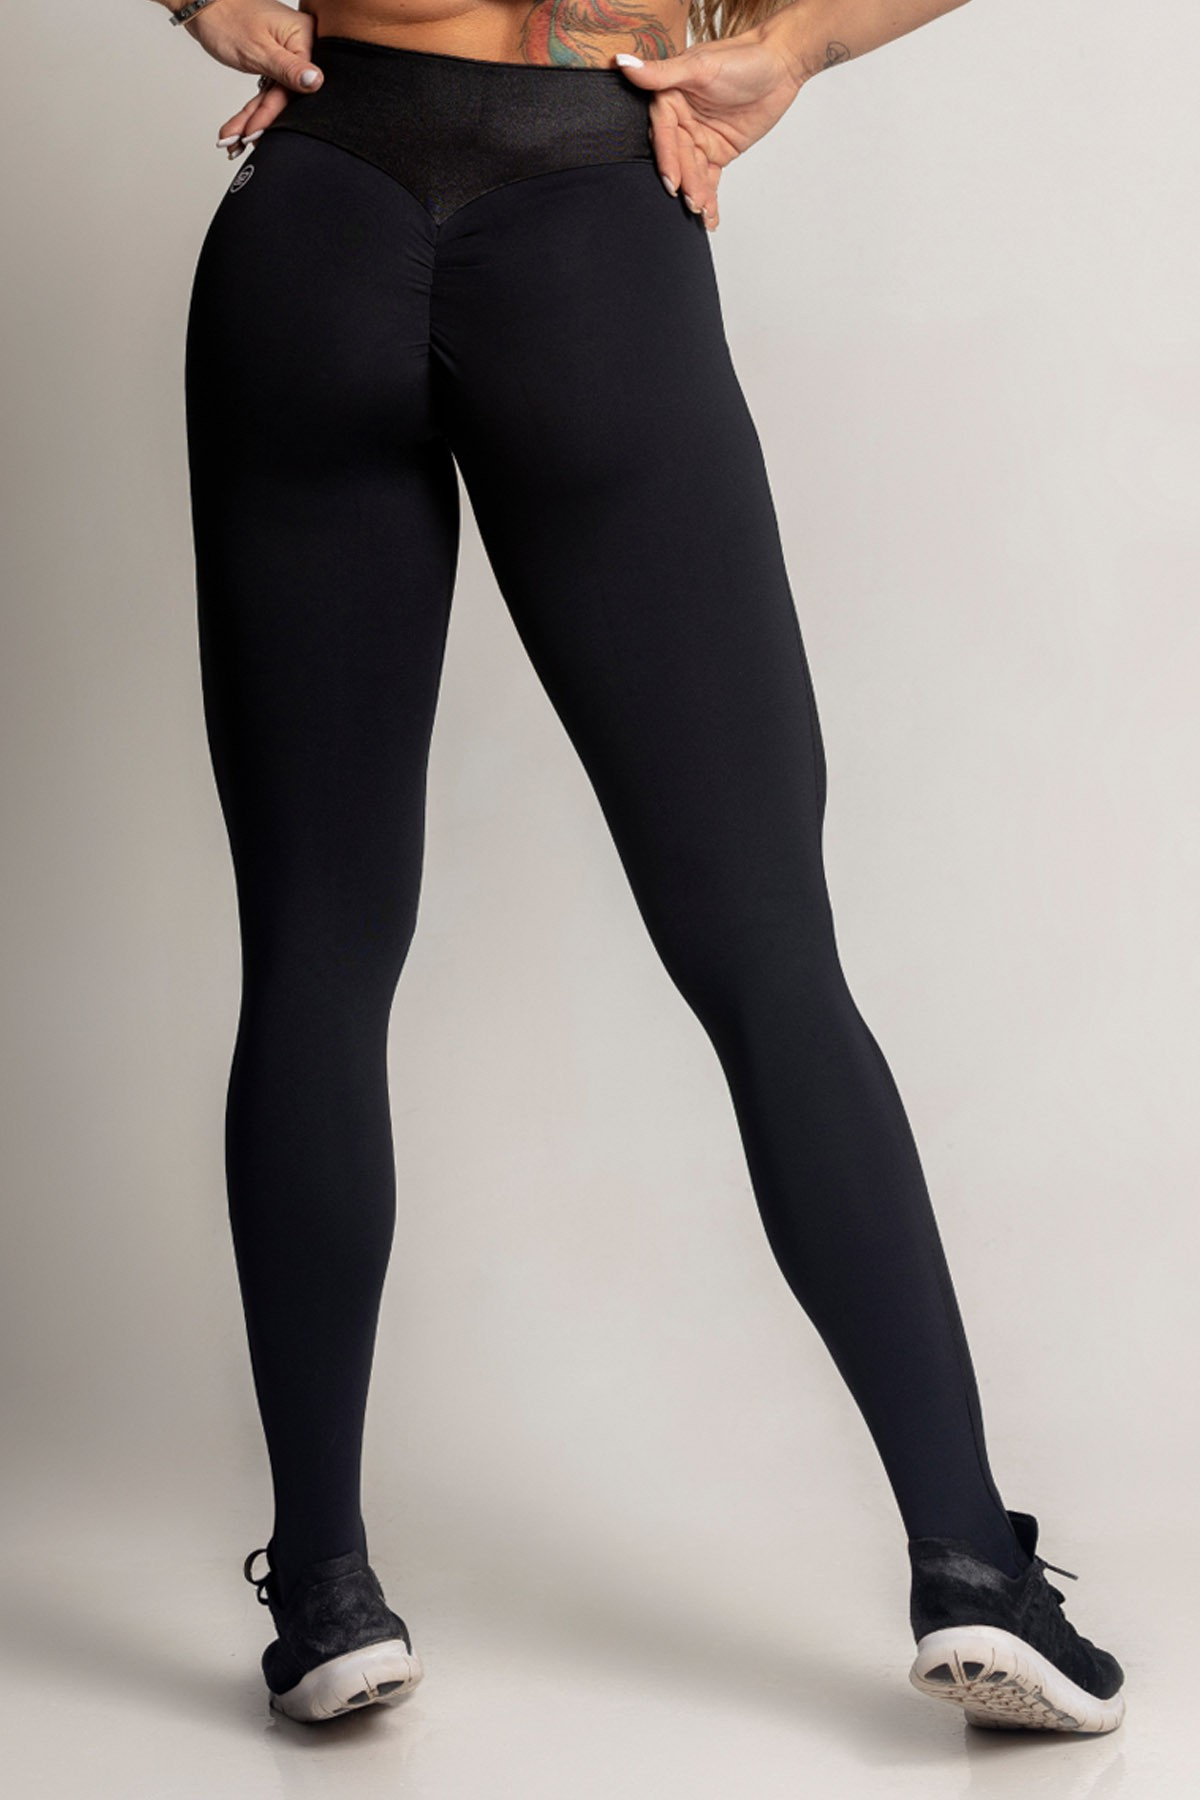 LEGGING DREAM FITNESS PRETA COM CIRRE HIPKINI